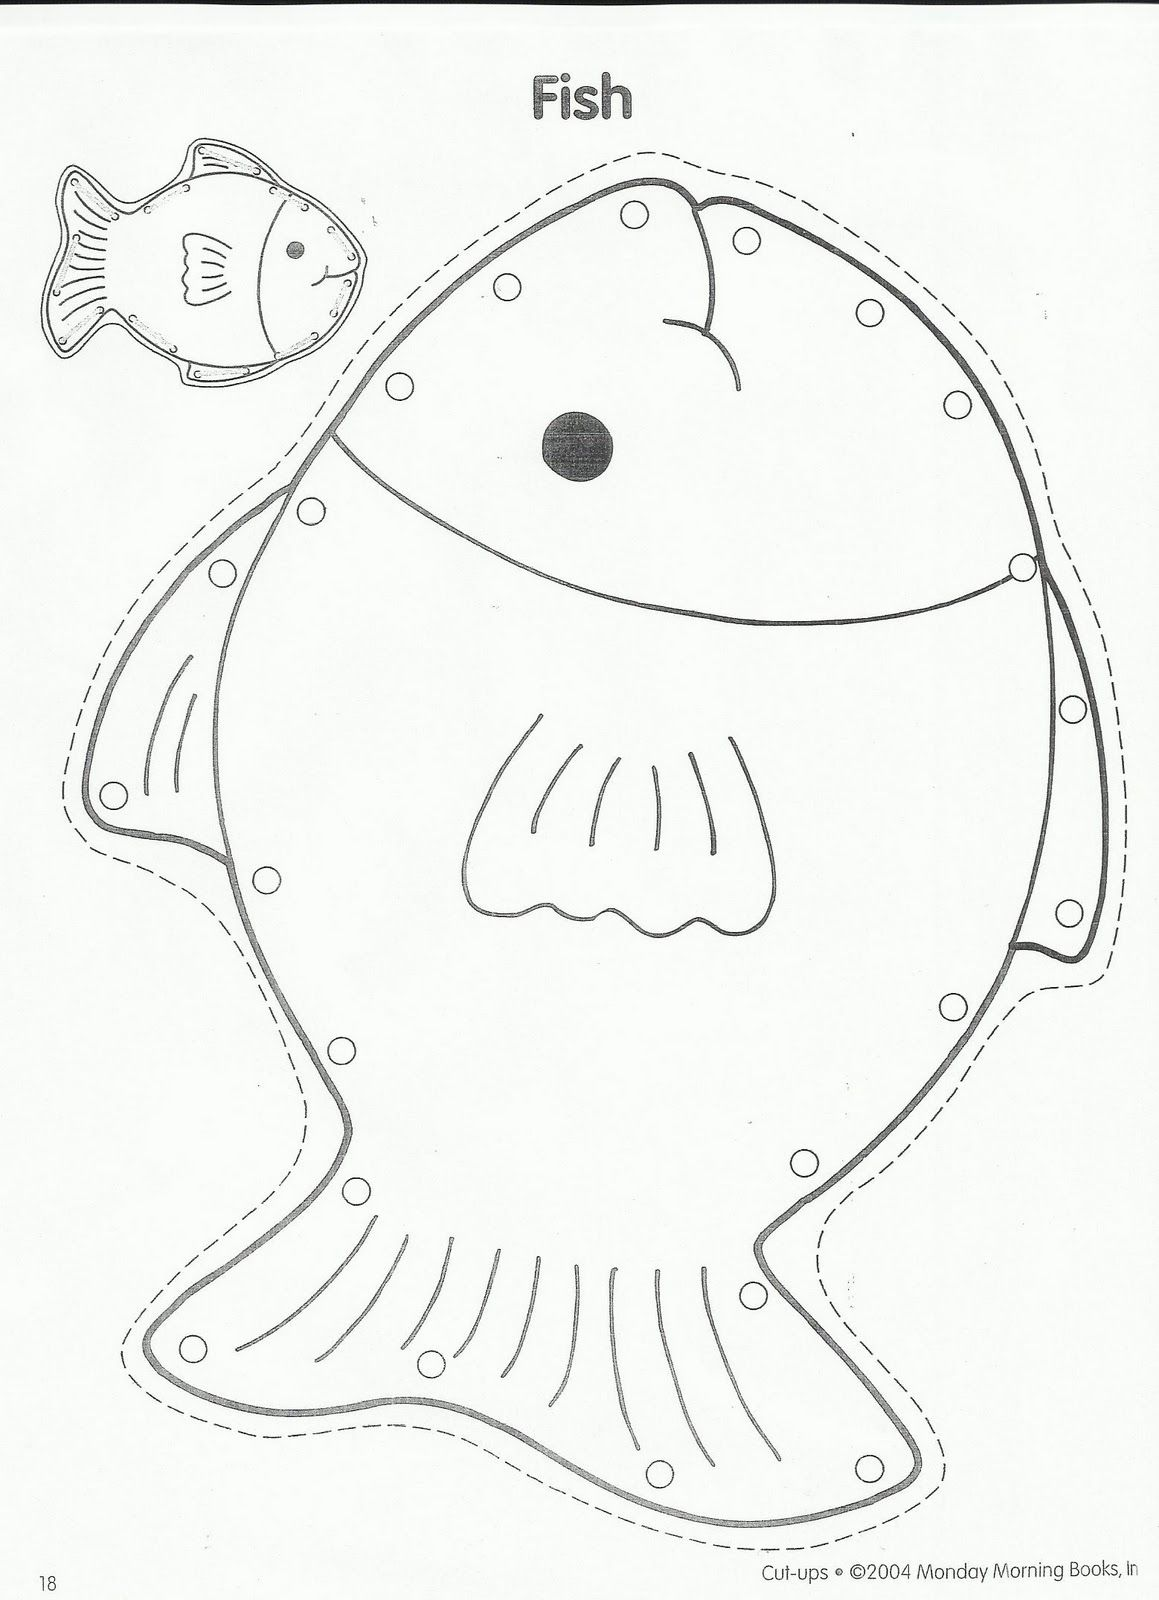 Fish coloring page activities pinterest fish students and group